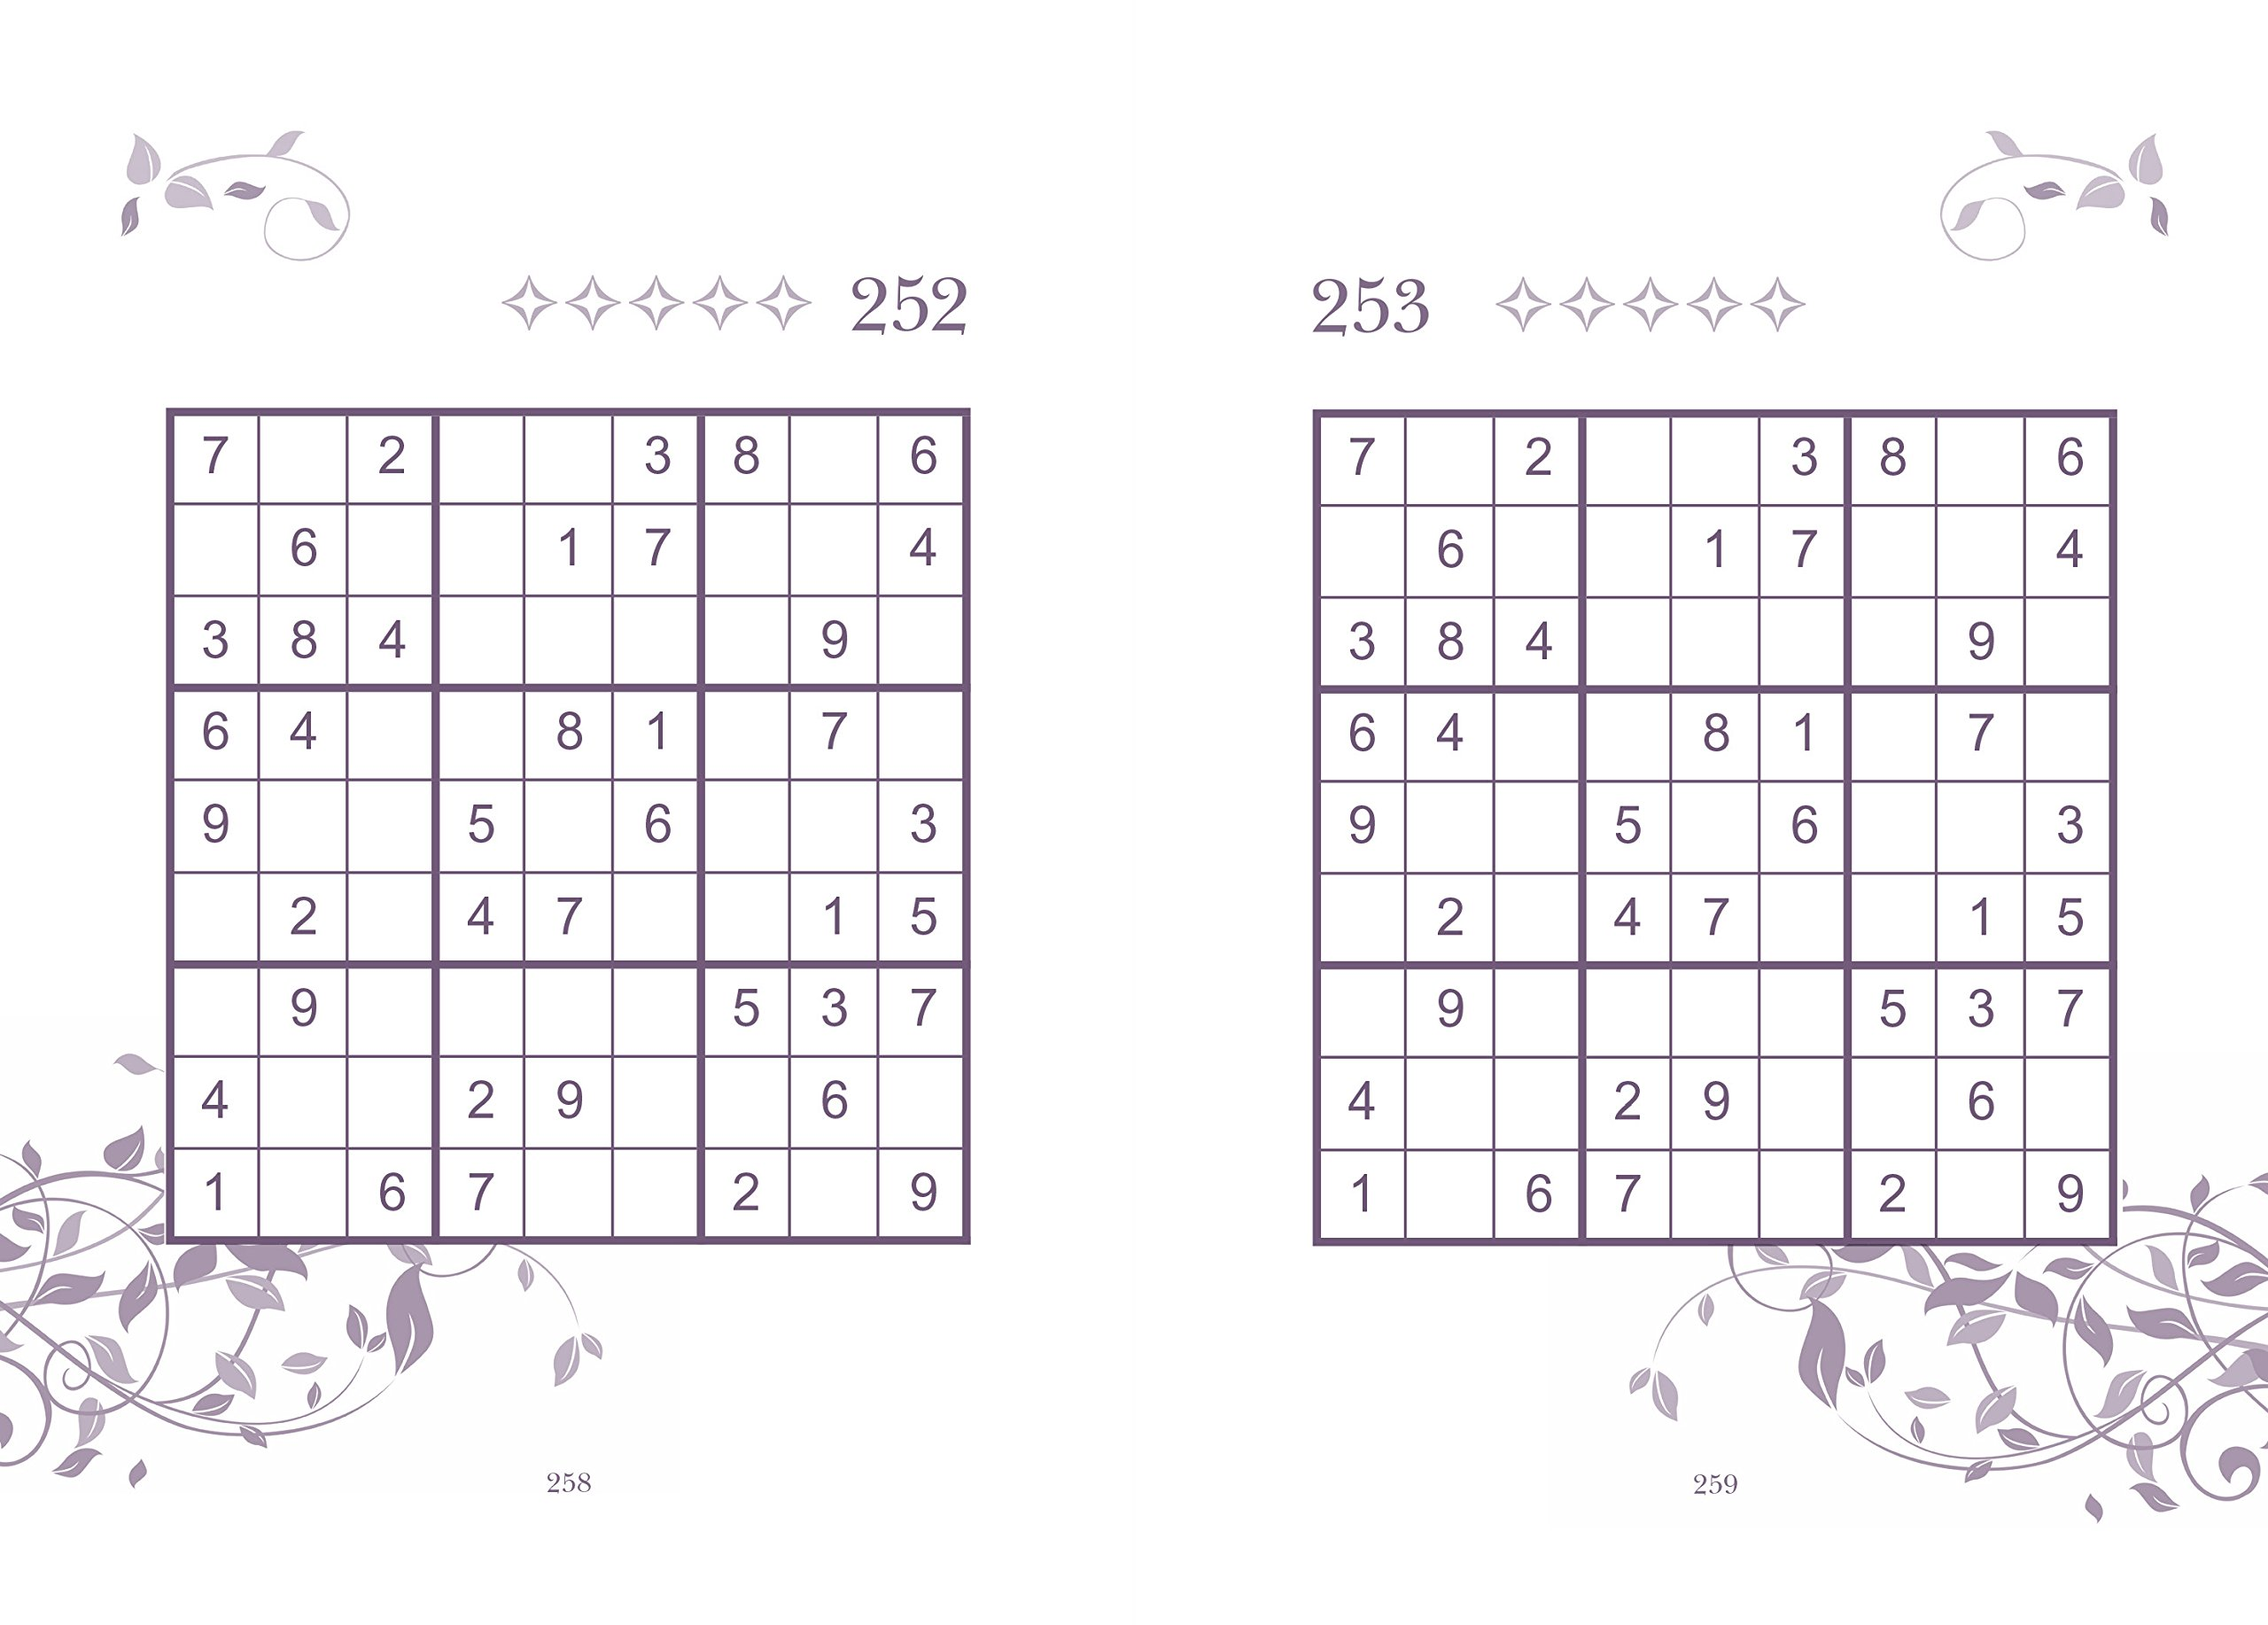 Sudoku over 250 puzzles ebook download pdf sudoku over 250 puzzles arcturus publishing trial ebook video dailymotion array sudoku over 250 puzzles arcturus publishing 9781784282660 fandeluxe Choice Image